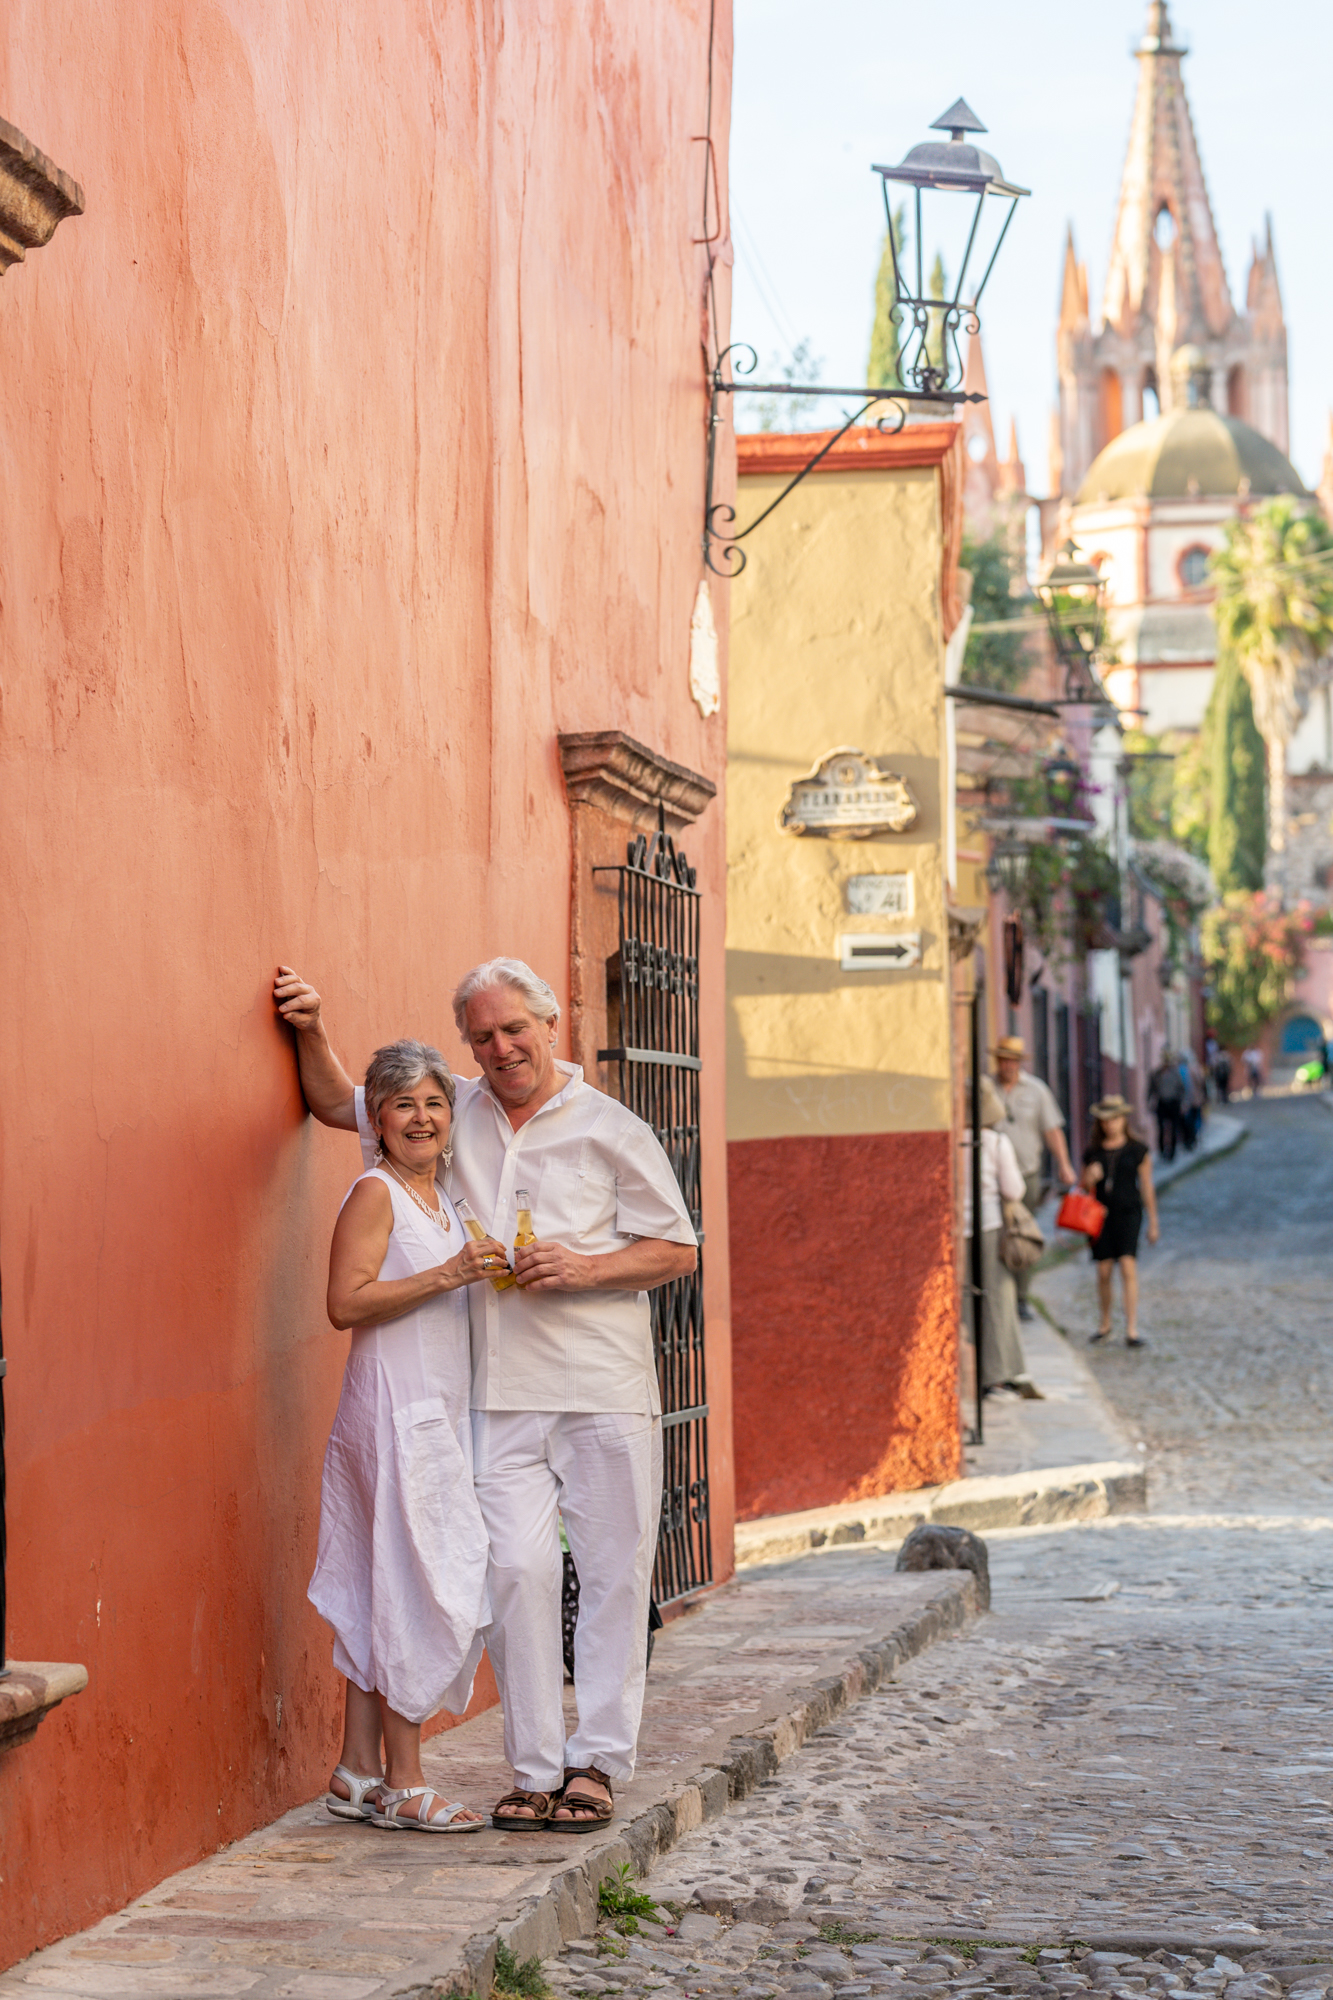 Photoshoot session in San Miguel de Allende with Suzanne and Leo-55.jpg